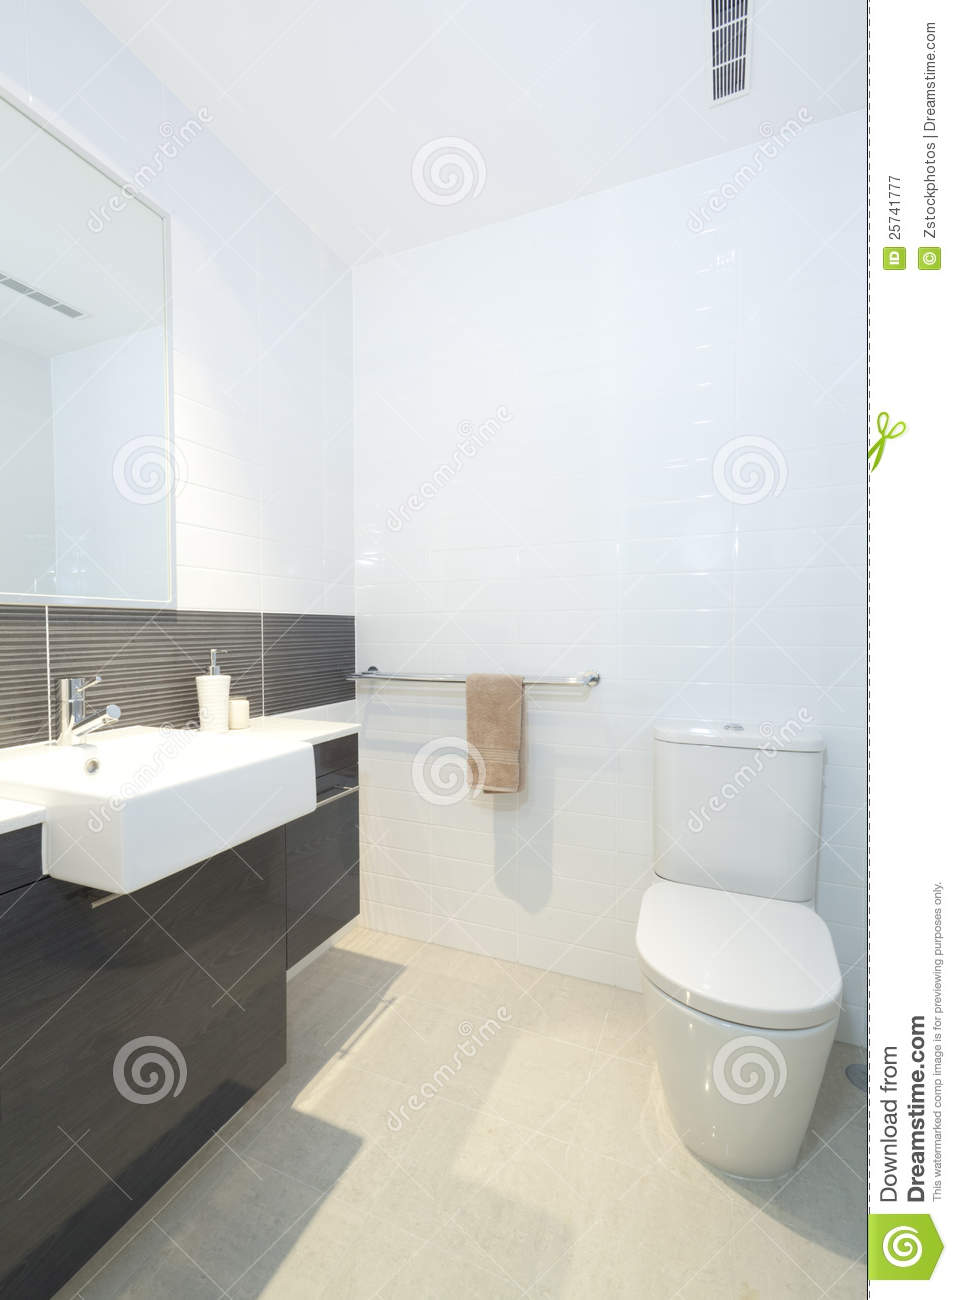 petite salle de bains moderne image stock image du washroom essuie 25741777. Black Bedroom Furniture Sets. Home Design Ideas